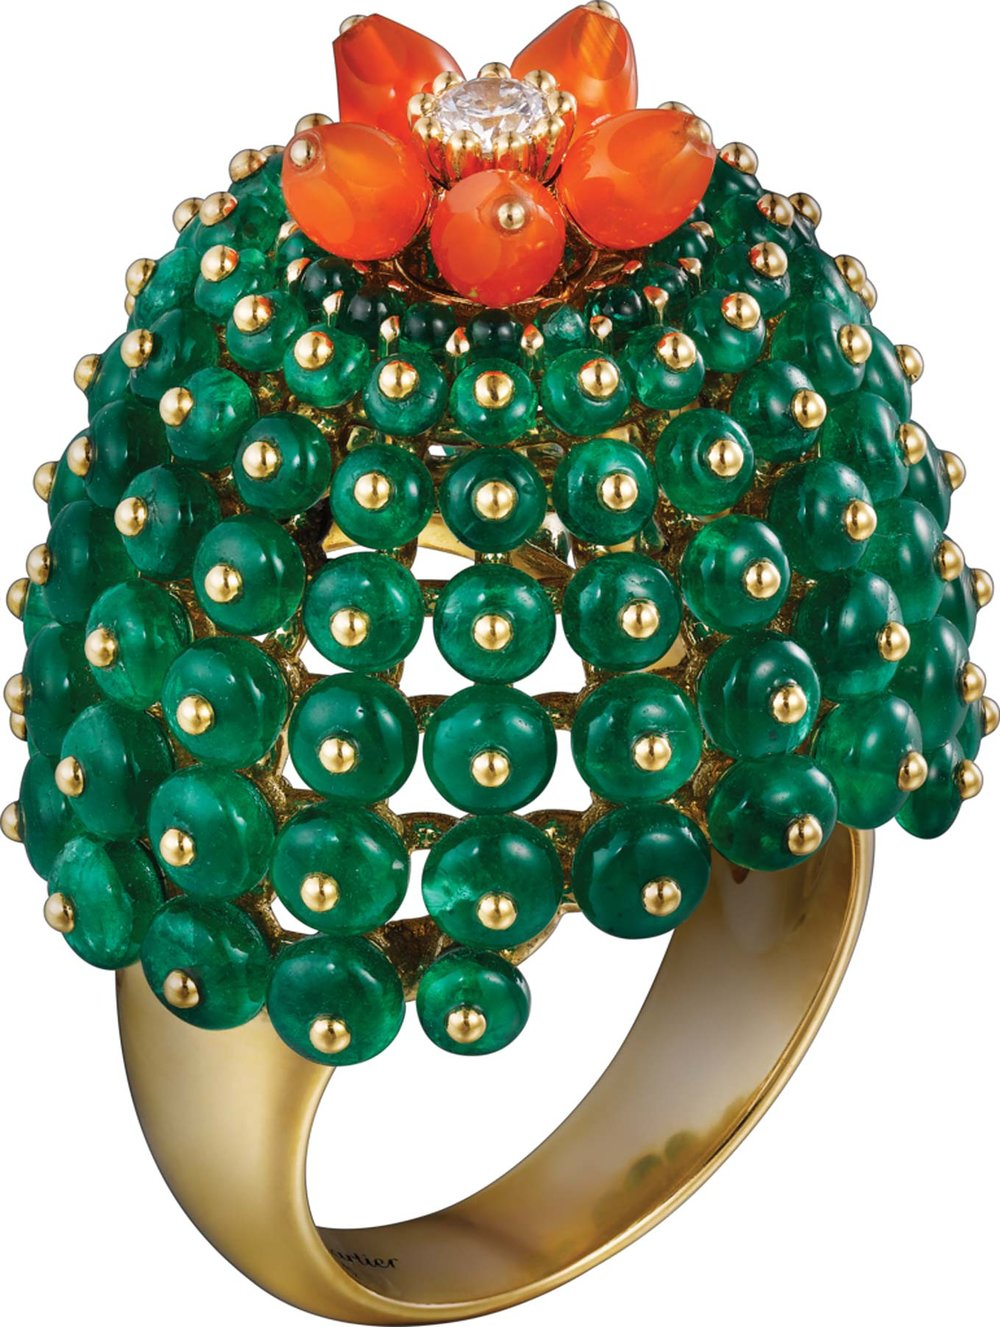 Cactus de Cartier Ring by Cartier